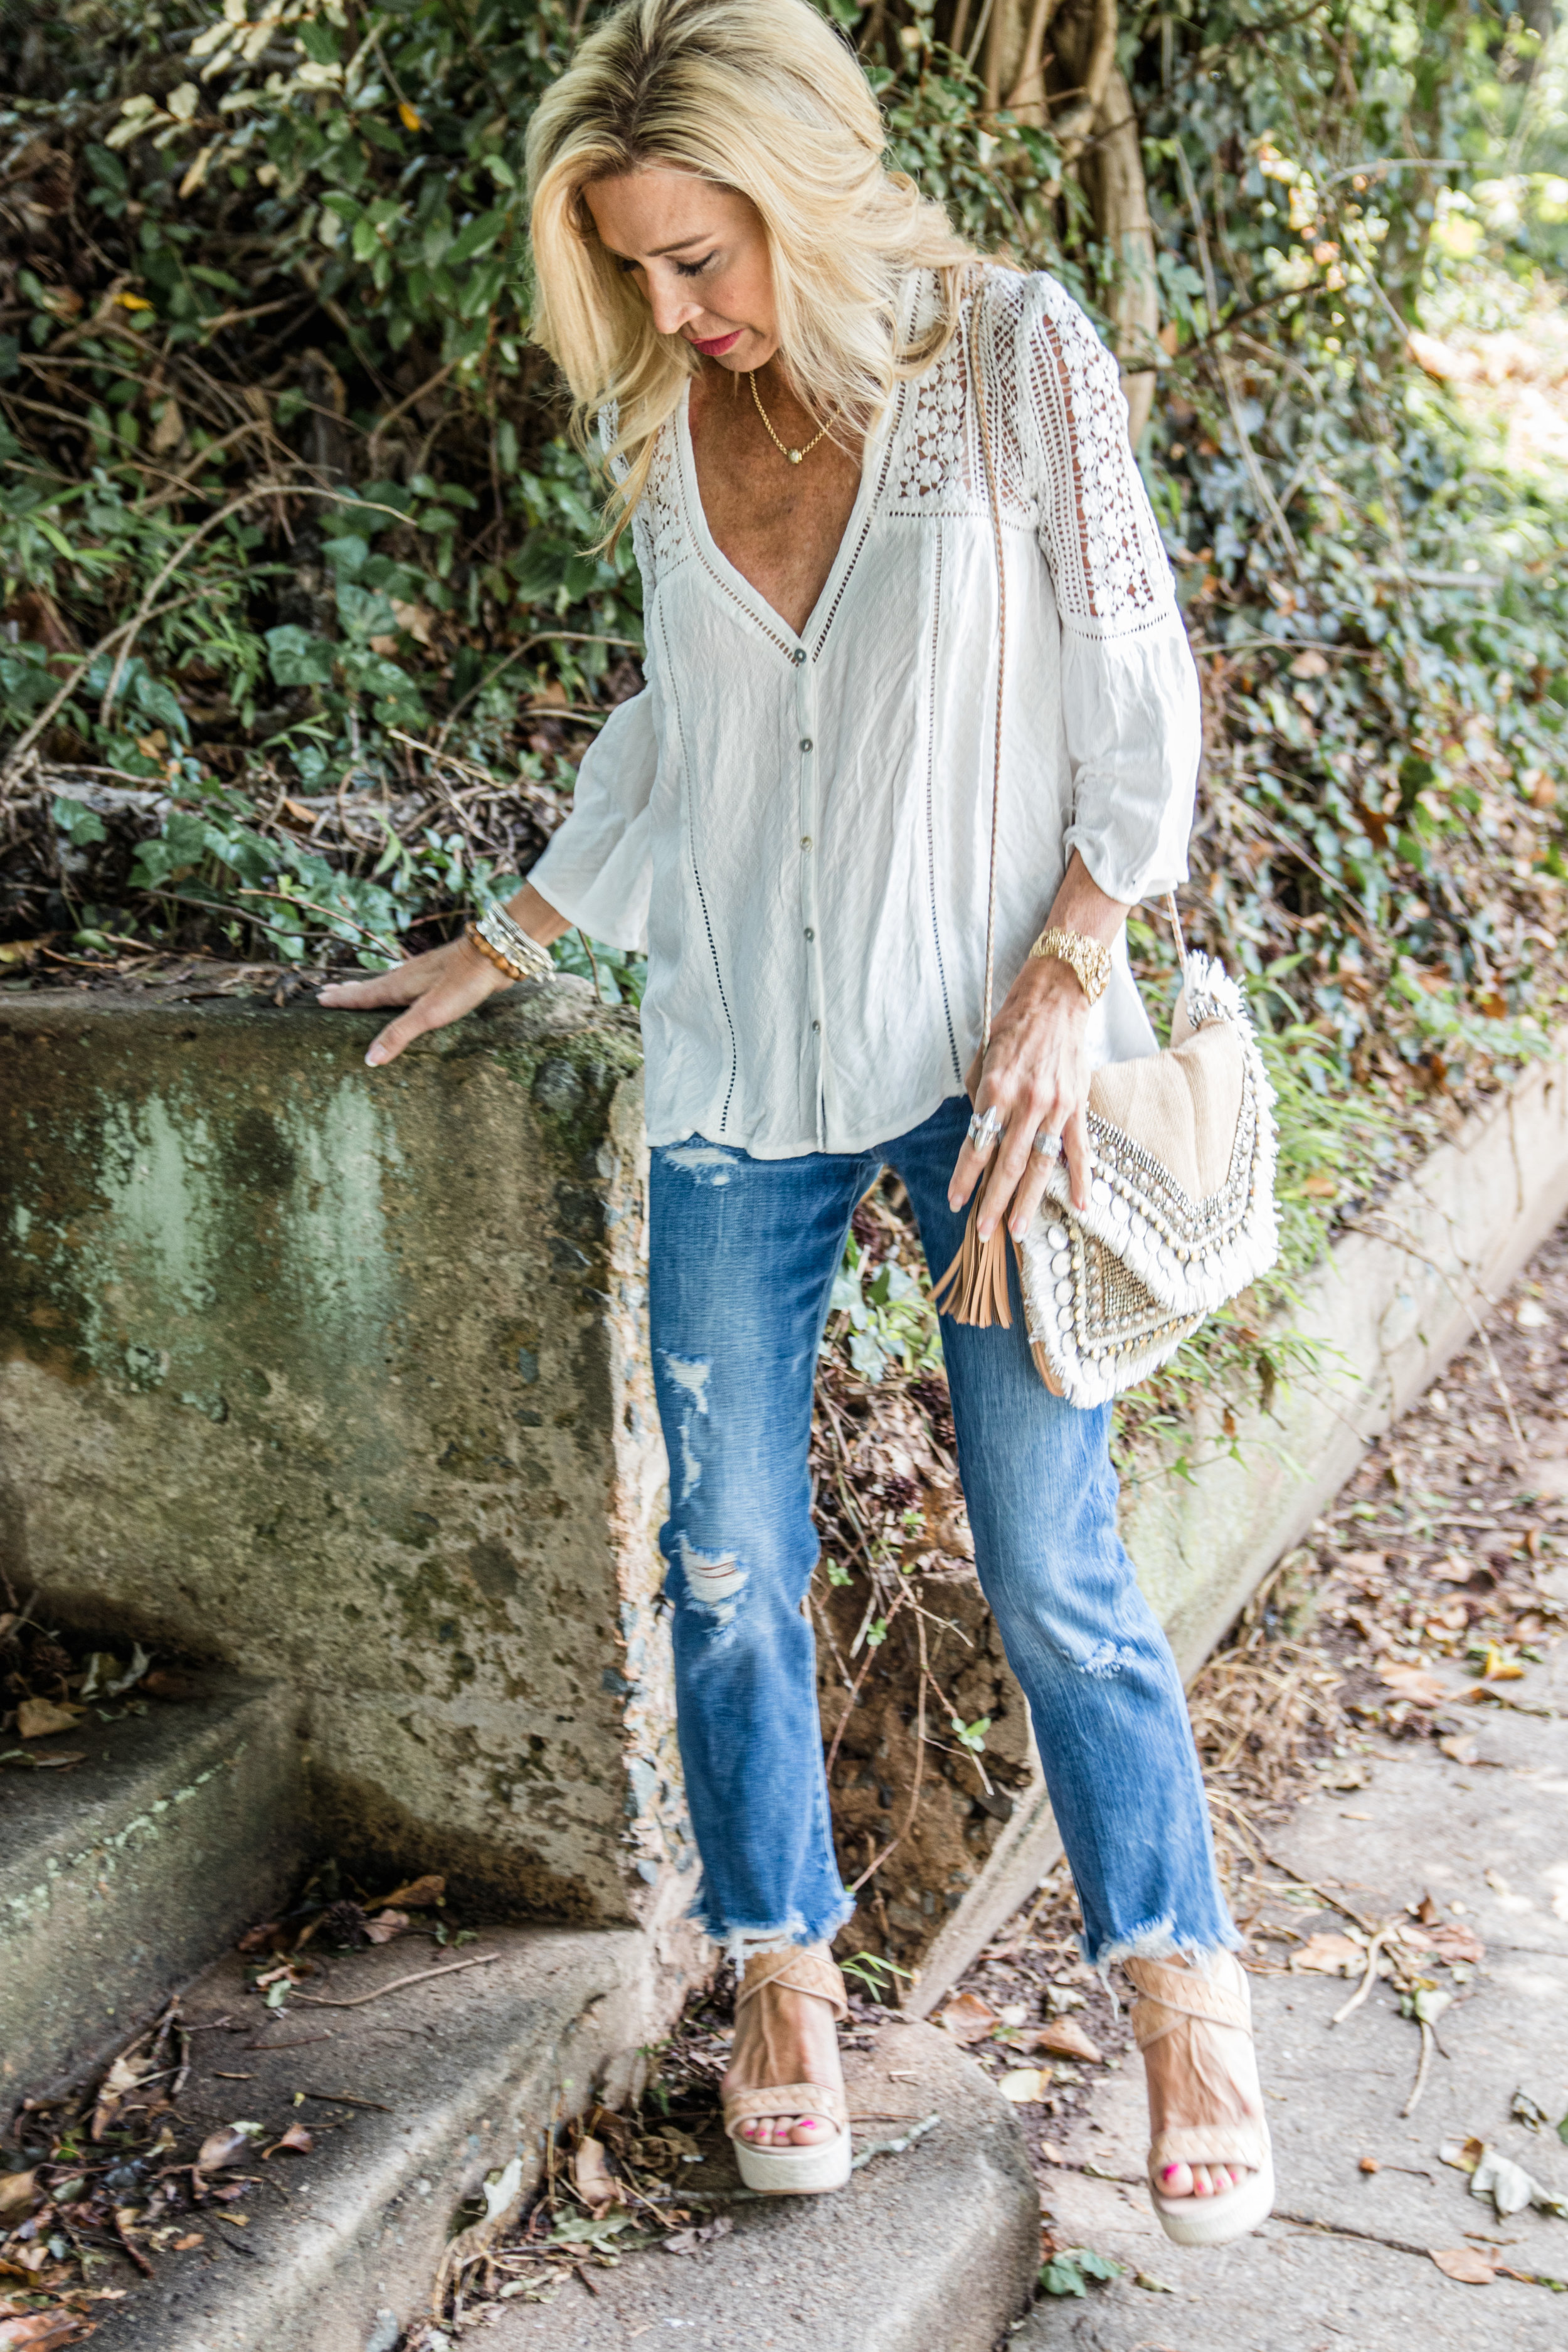 Casual Spring Outfit - Vici top and bag, Frame Denim jeans and Stuart Weitzman shoes